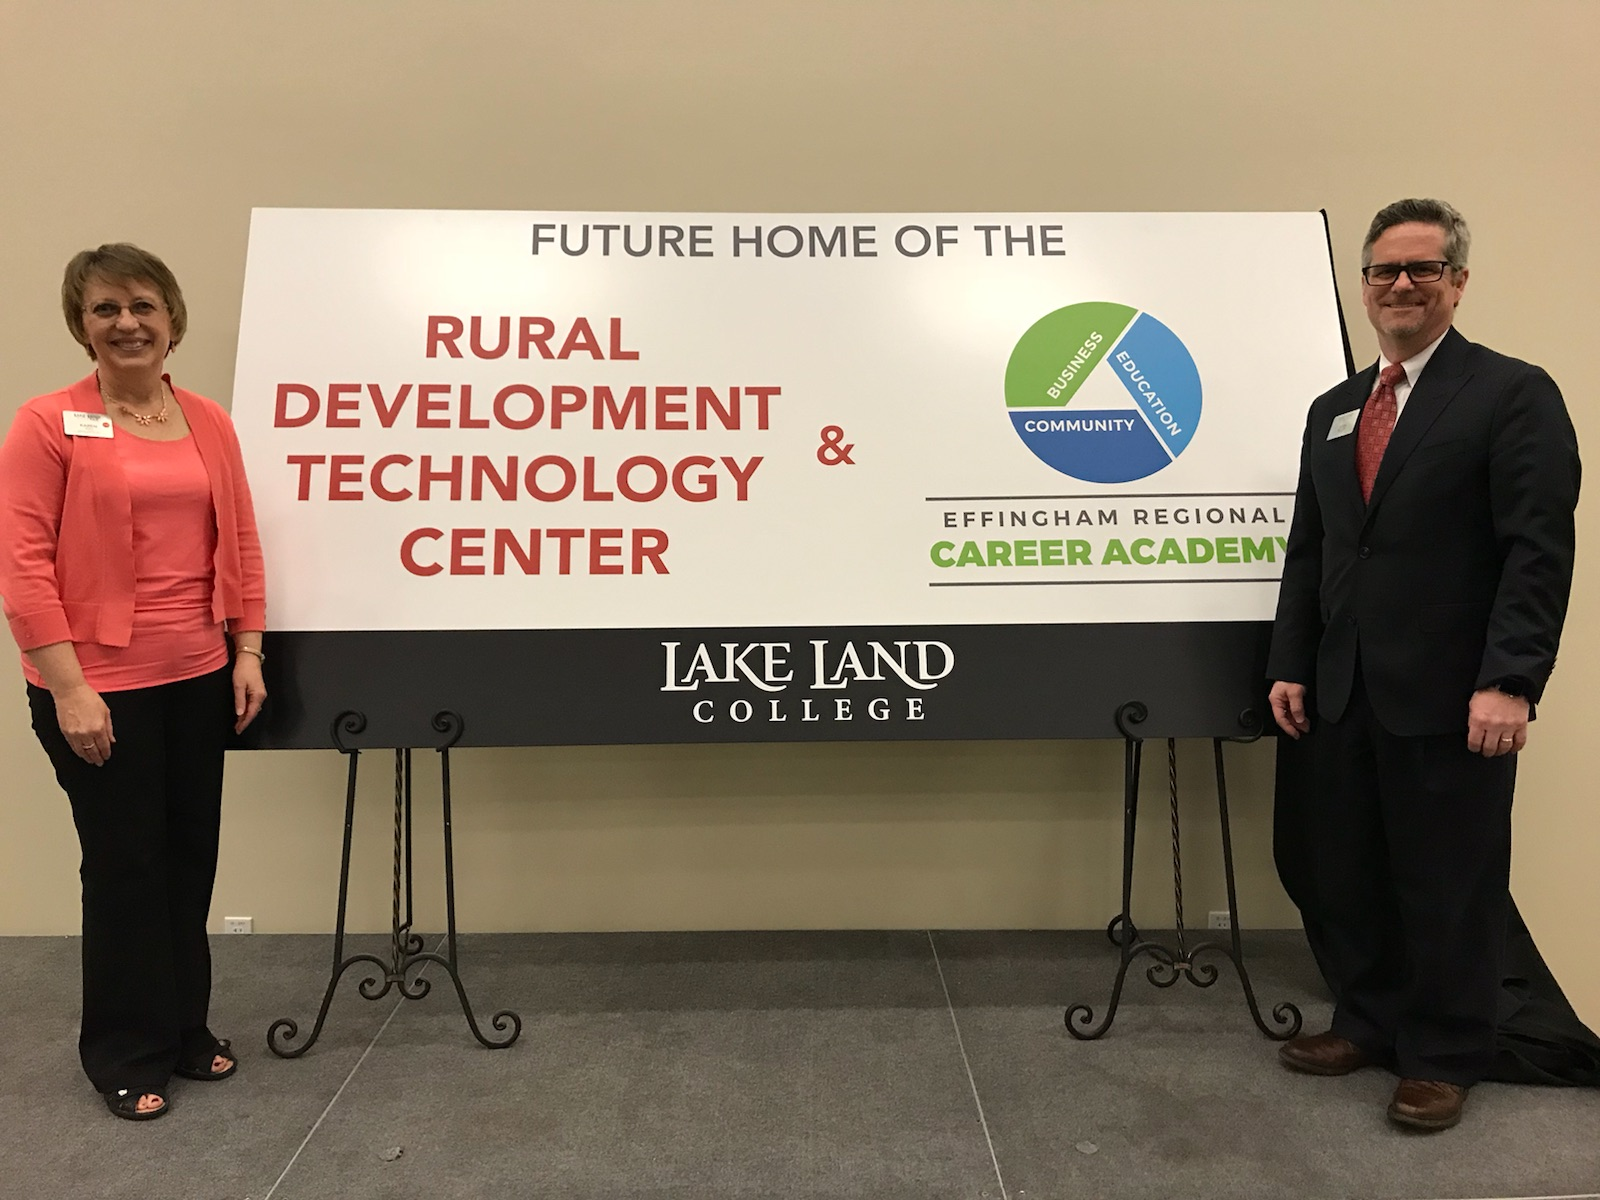 Lake Land College to fund construction for  Rural Development Technology Center in Effingham